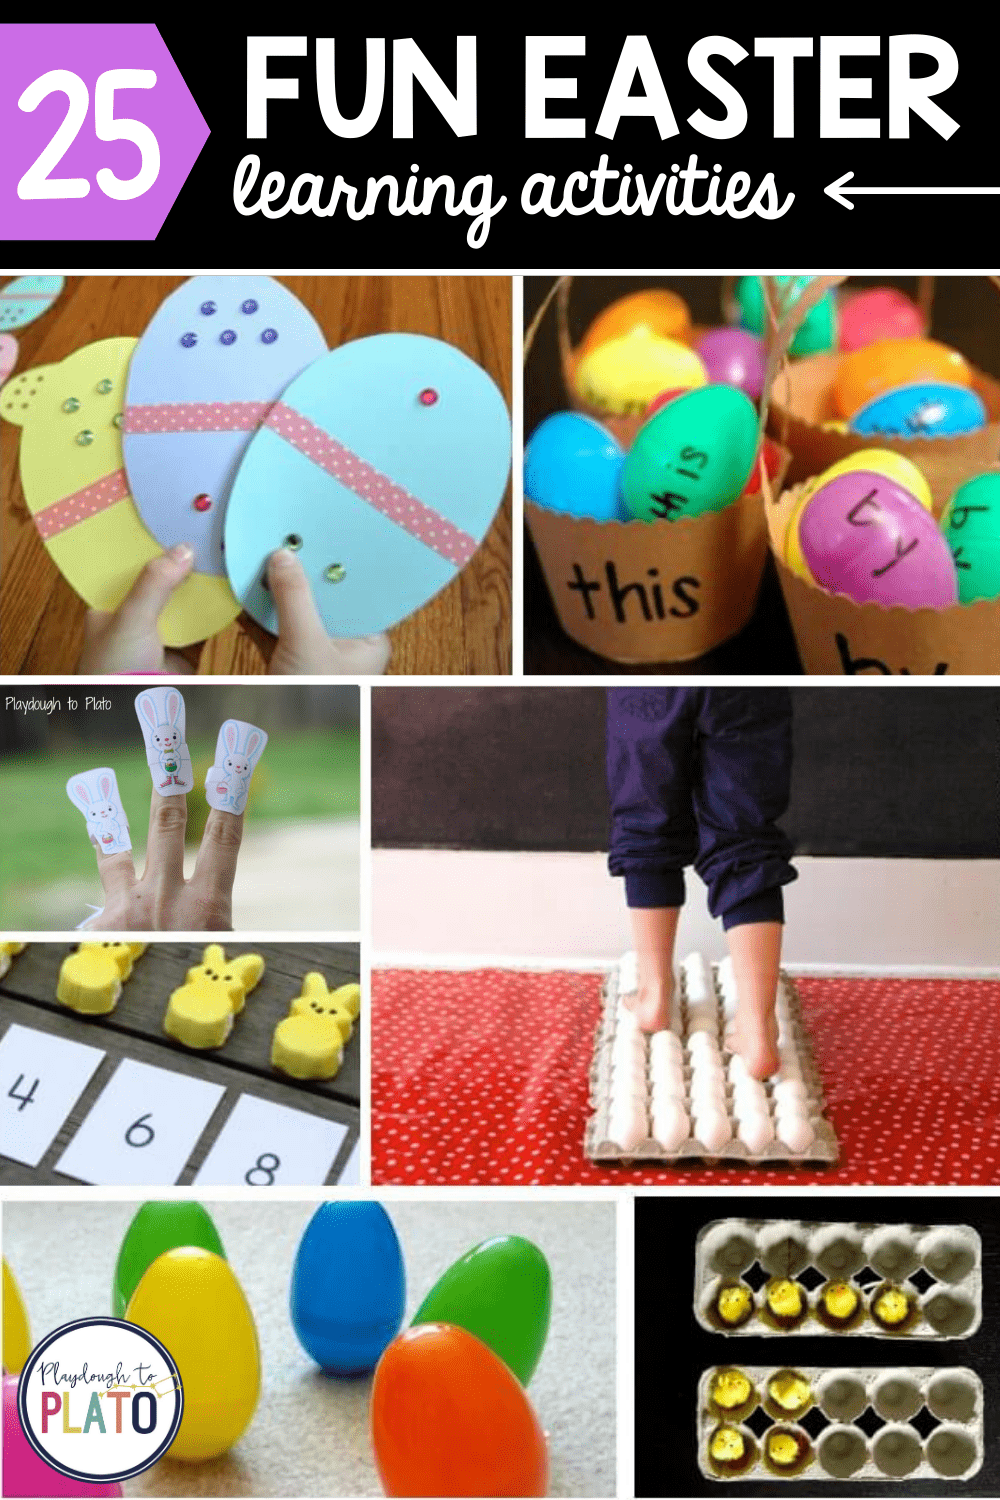 25 Fun Easter Learning Activities